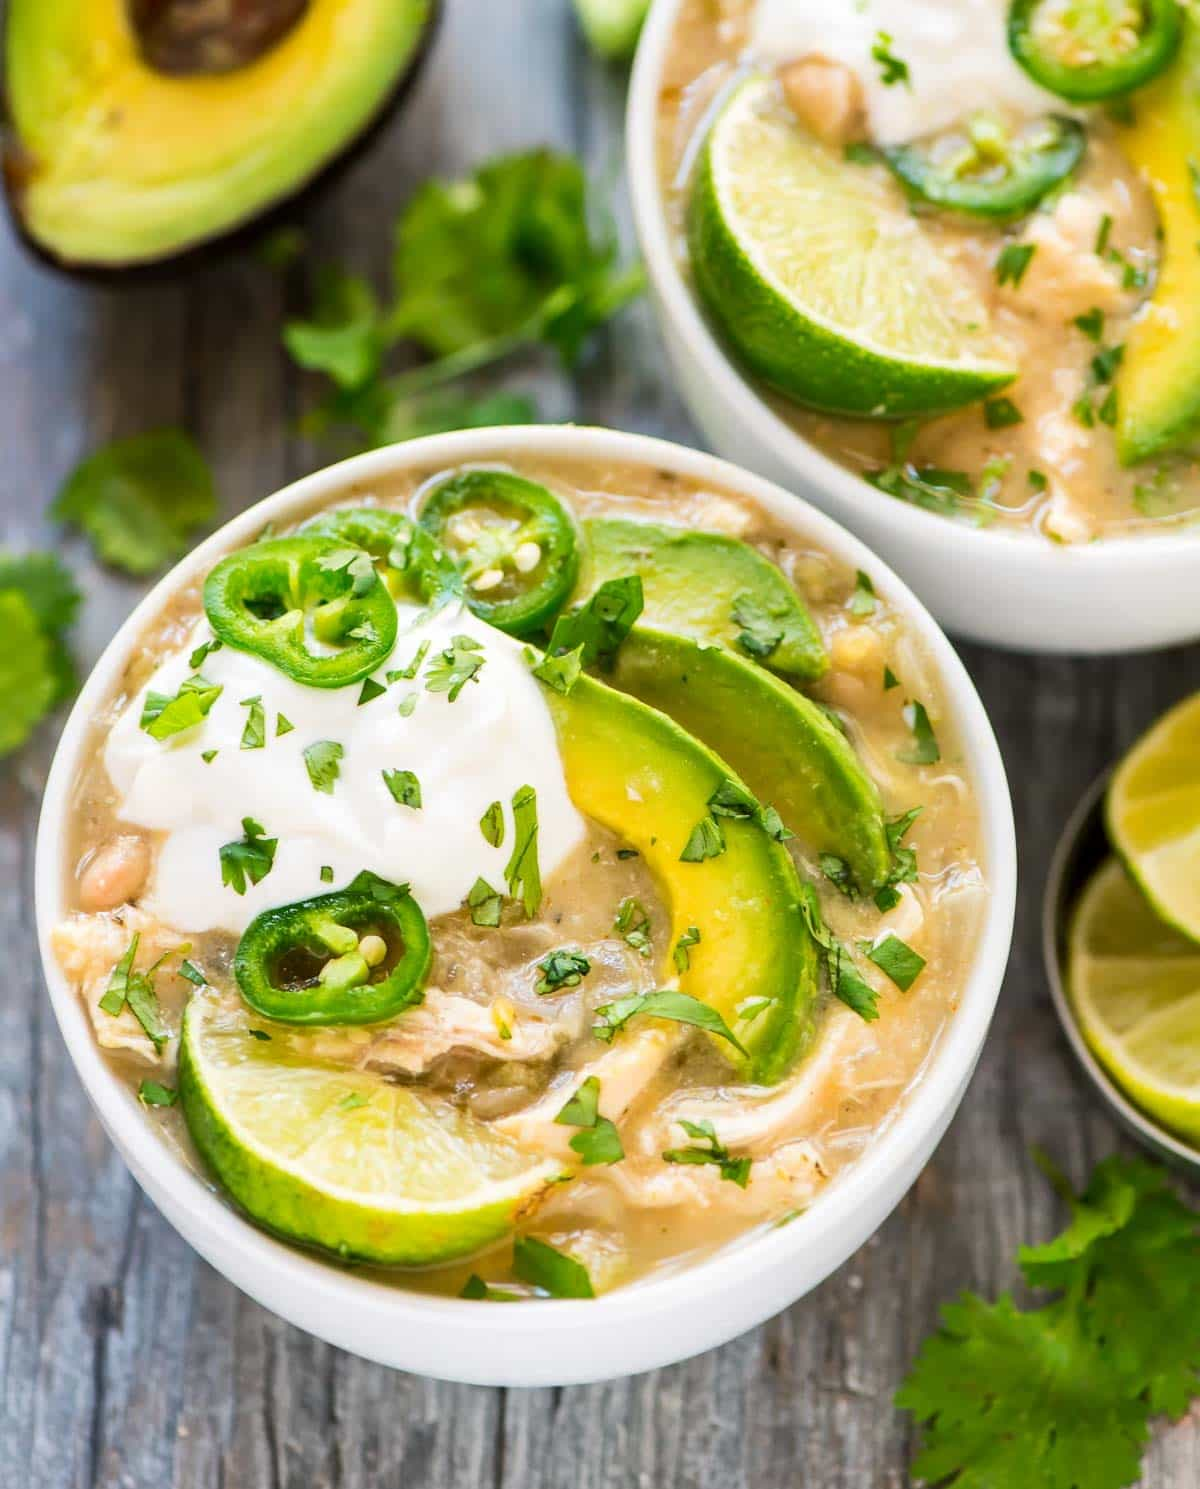 Crockpot White Chicken Chile with Avocado and White Beans. Healthy, easy, and the slow cooker does the work! Recipe at wellplated.com | @wellplated